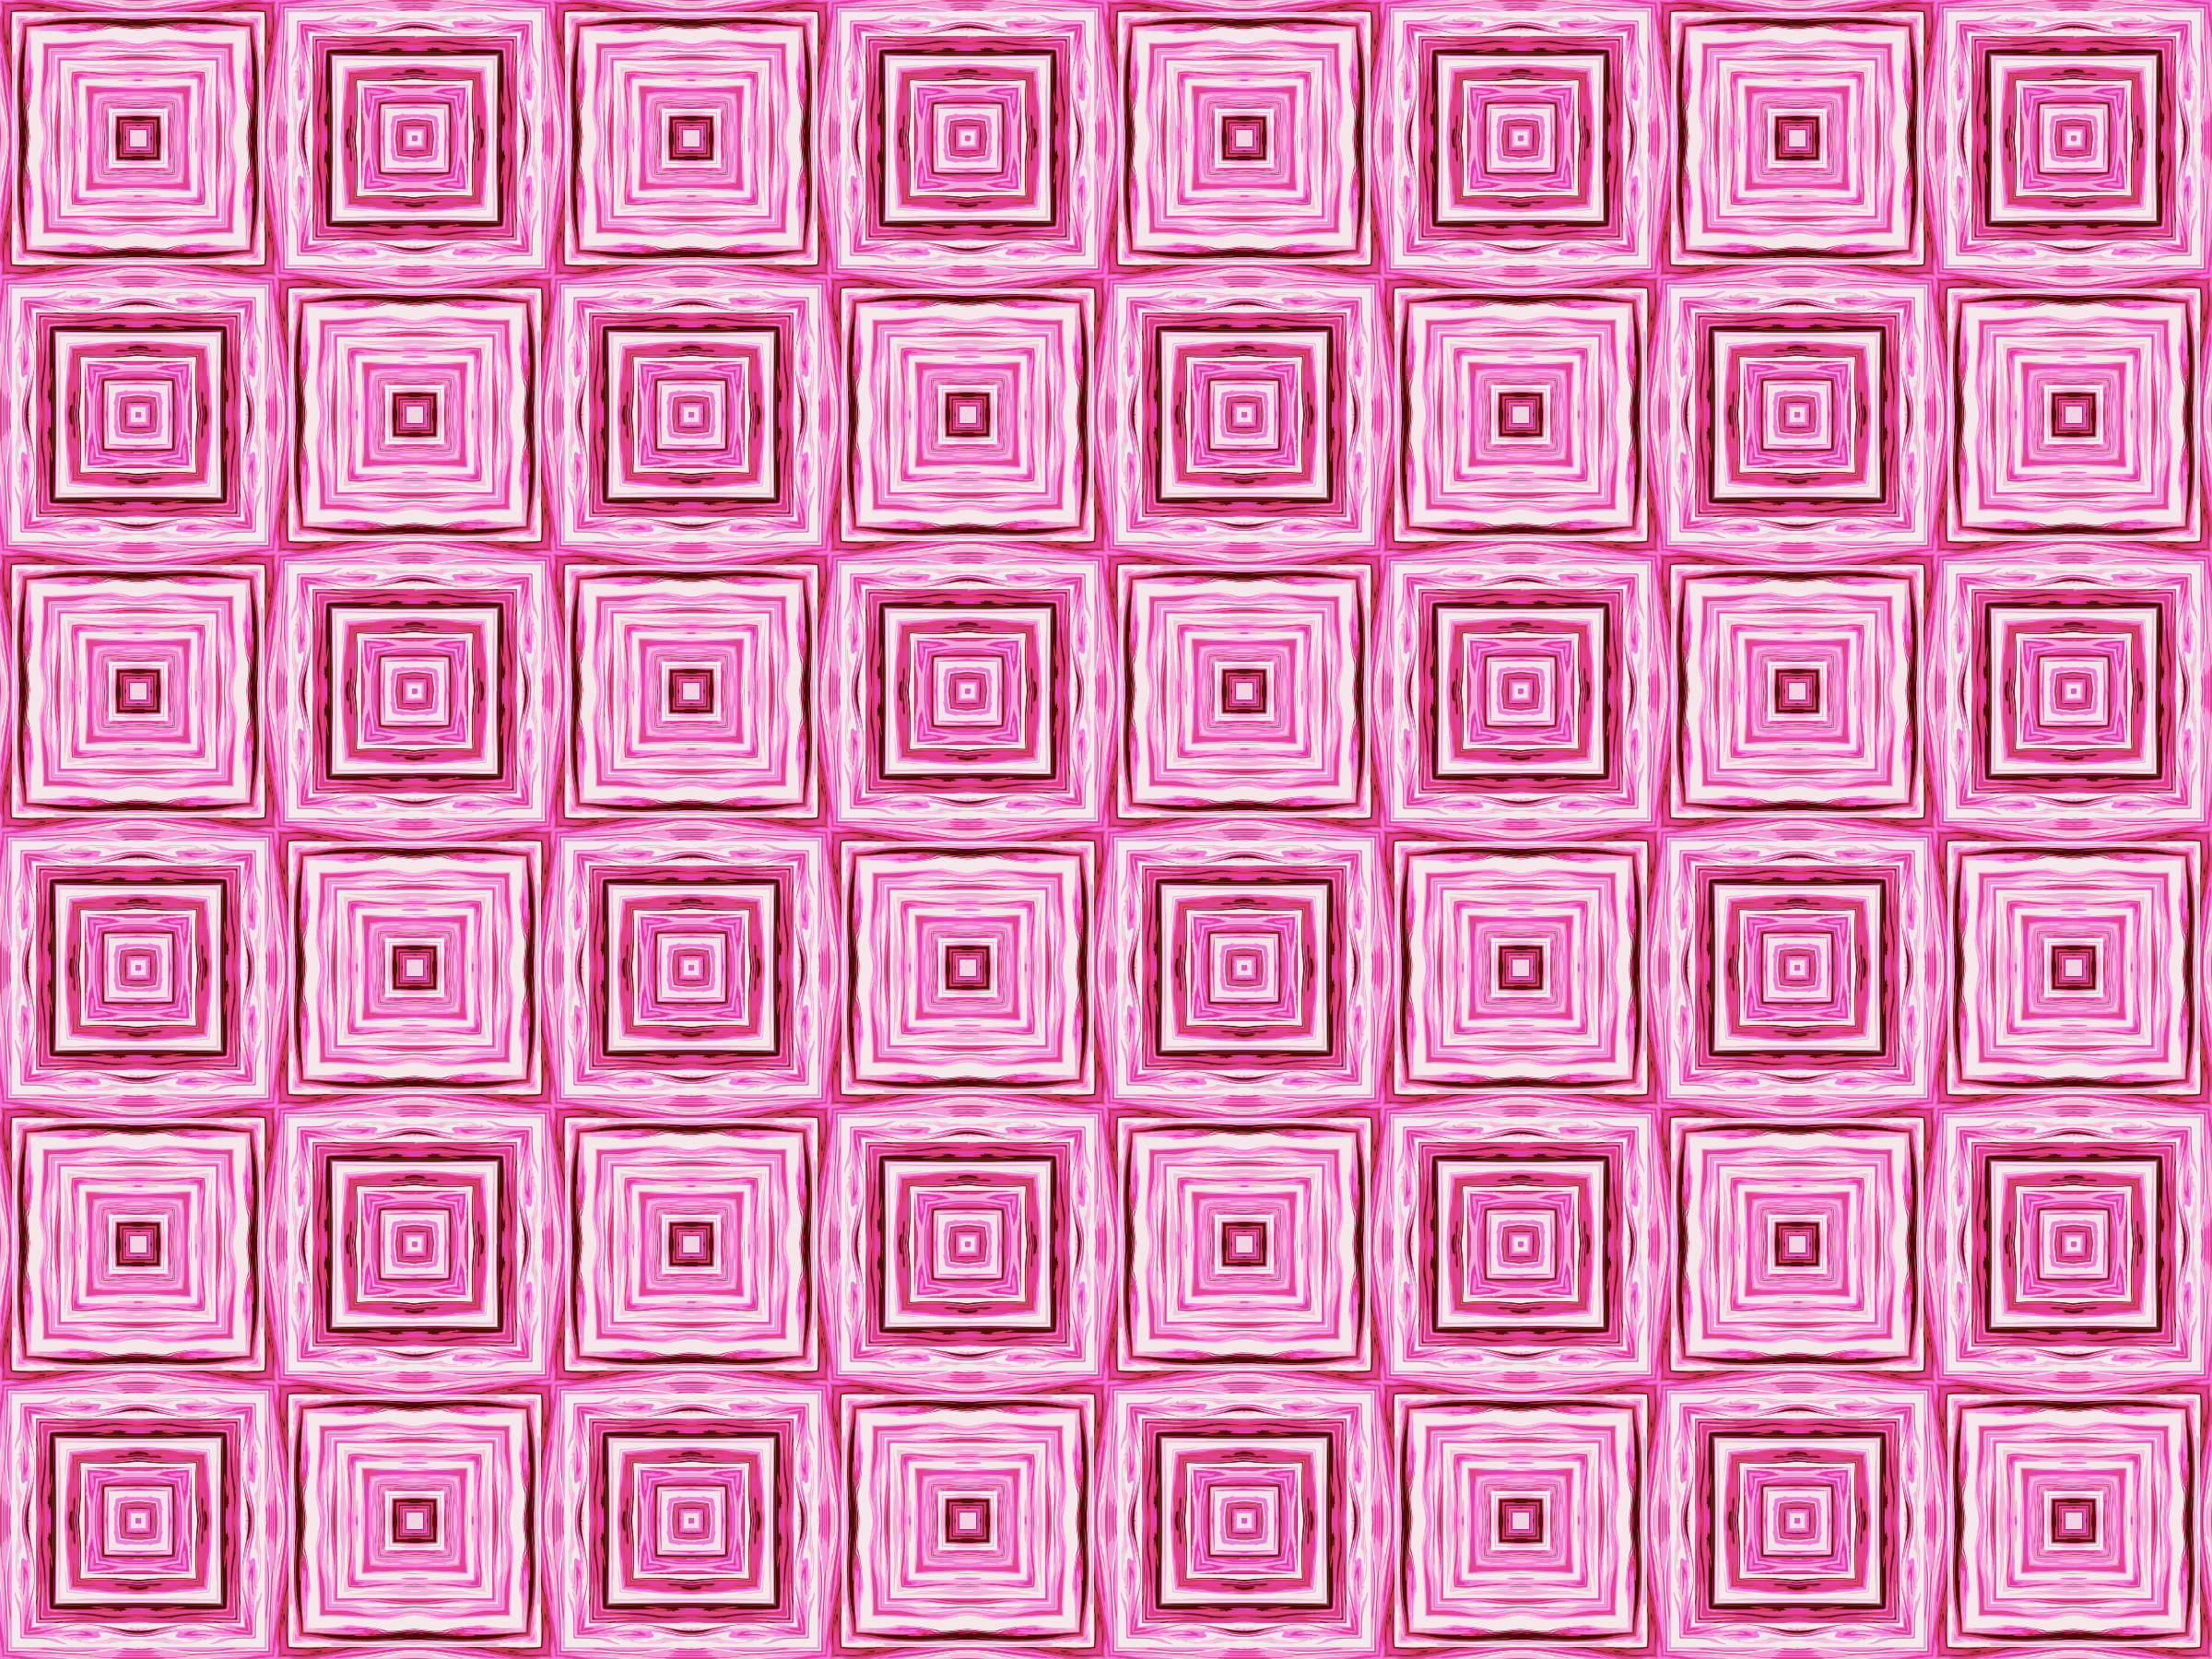 Background pattern 314 (colour 5) by Firkin